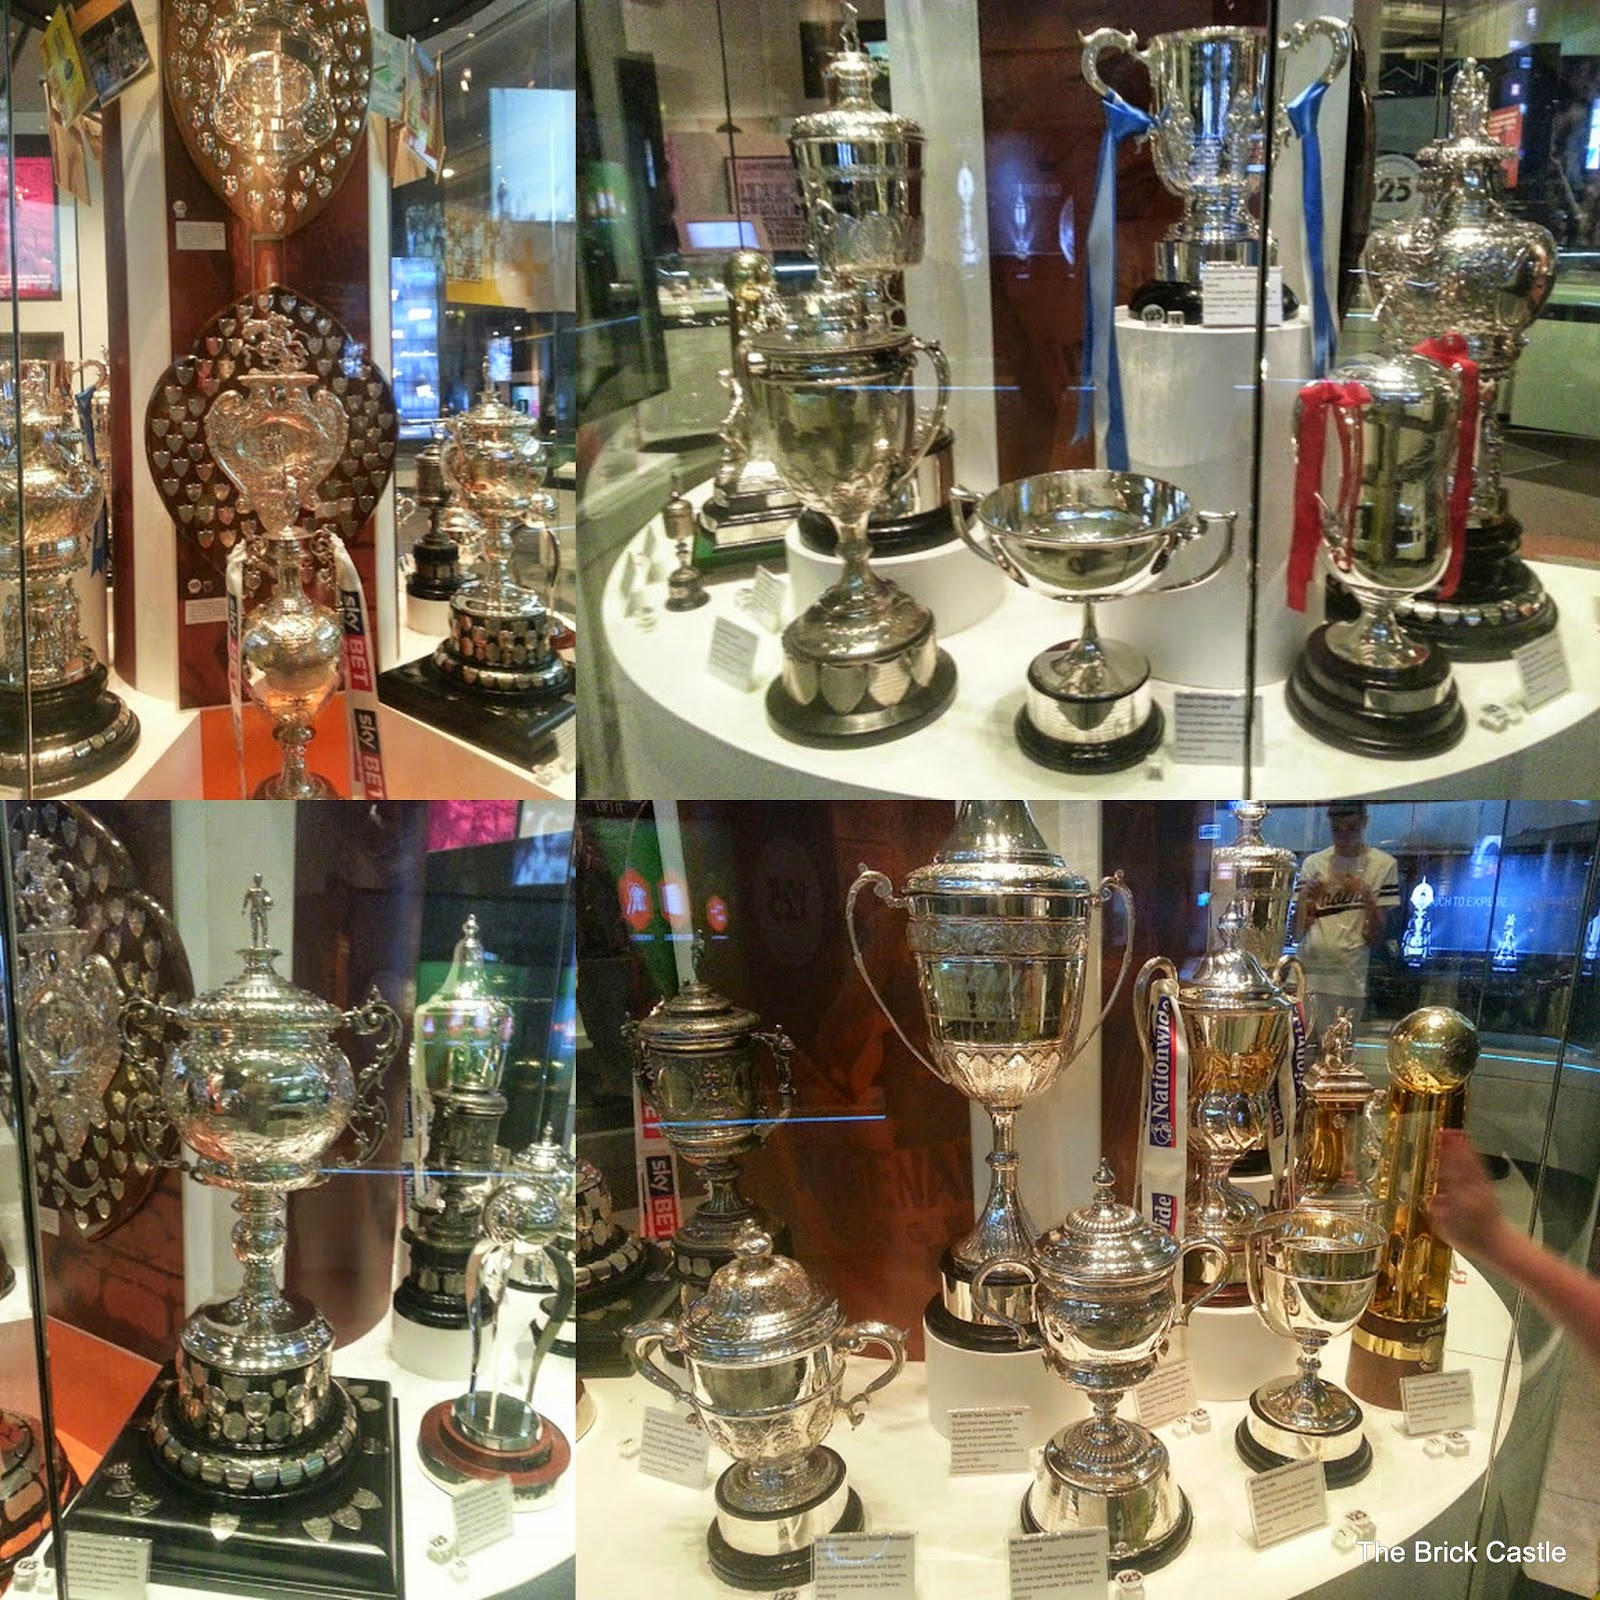 The National Football Museum at Urbis, Manchester trophy cabinet collection